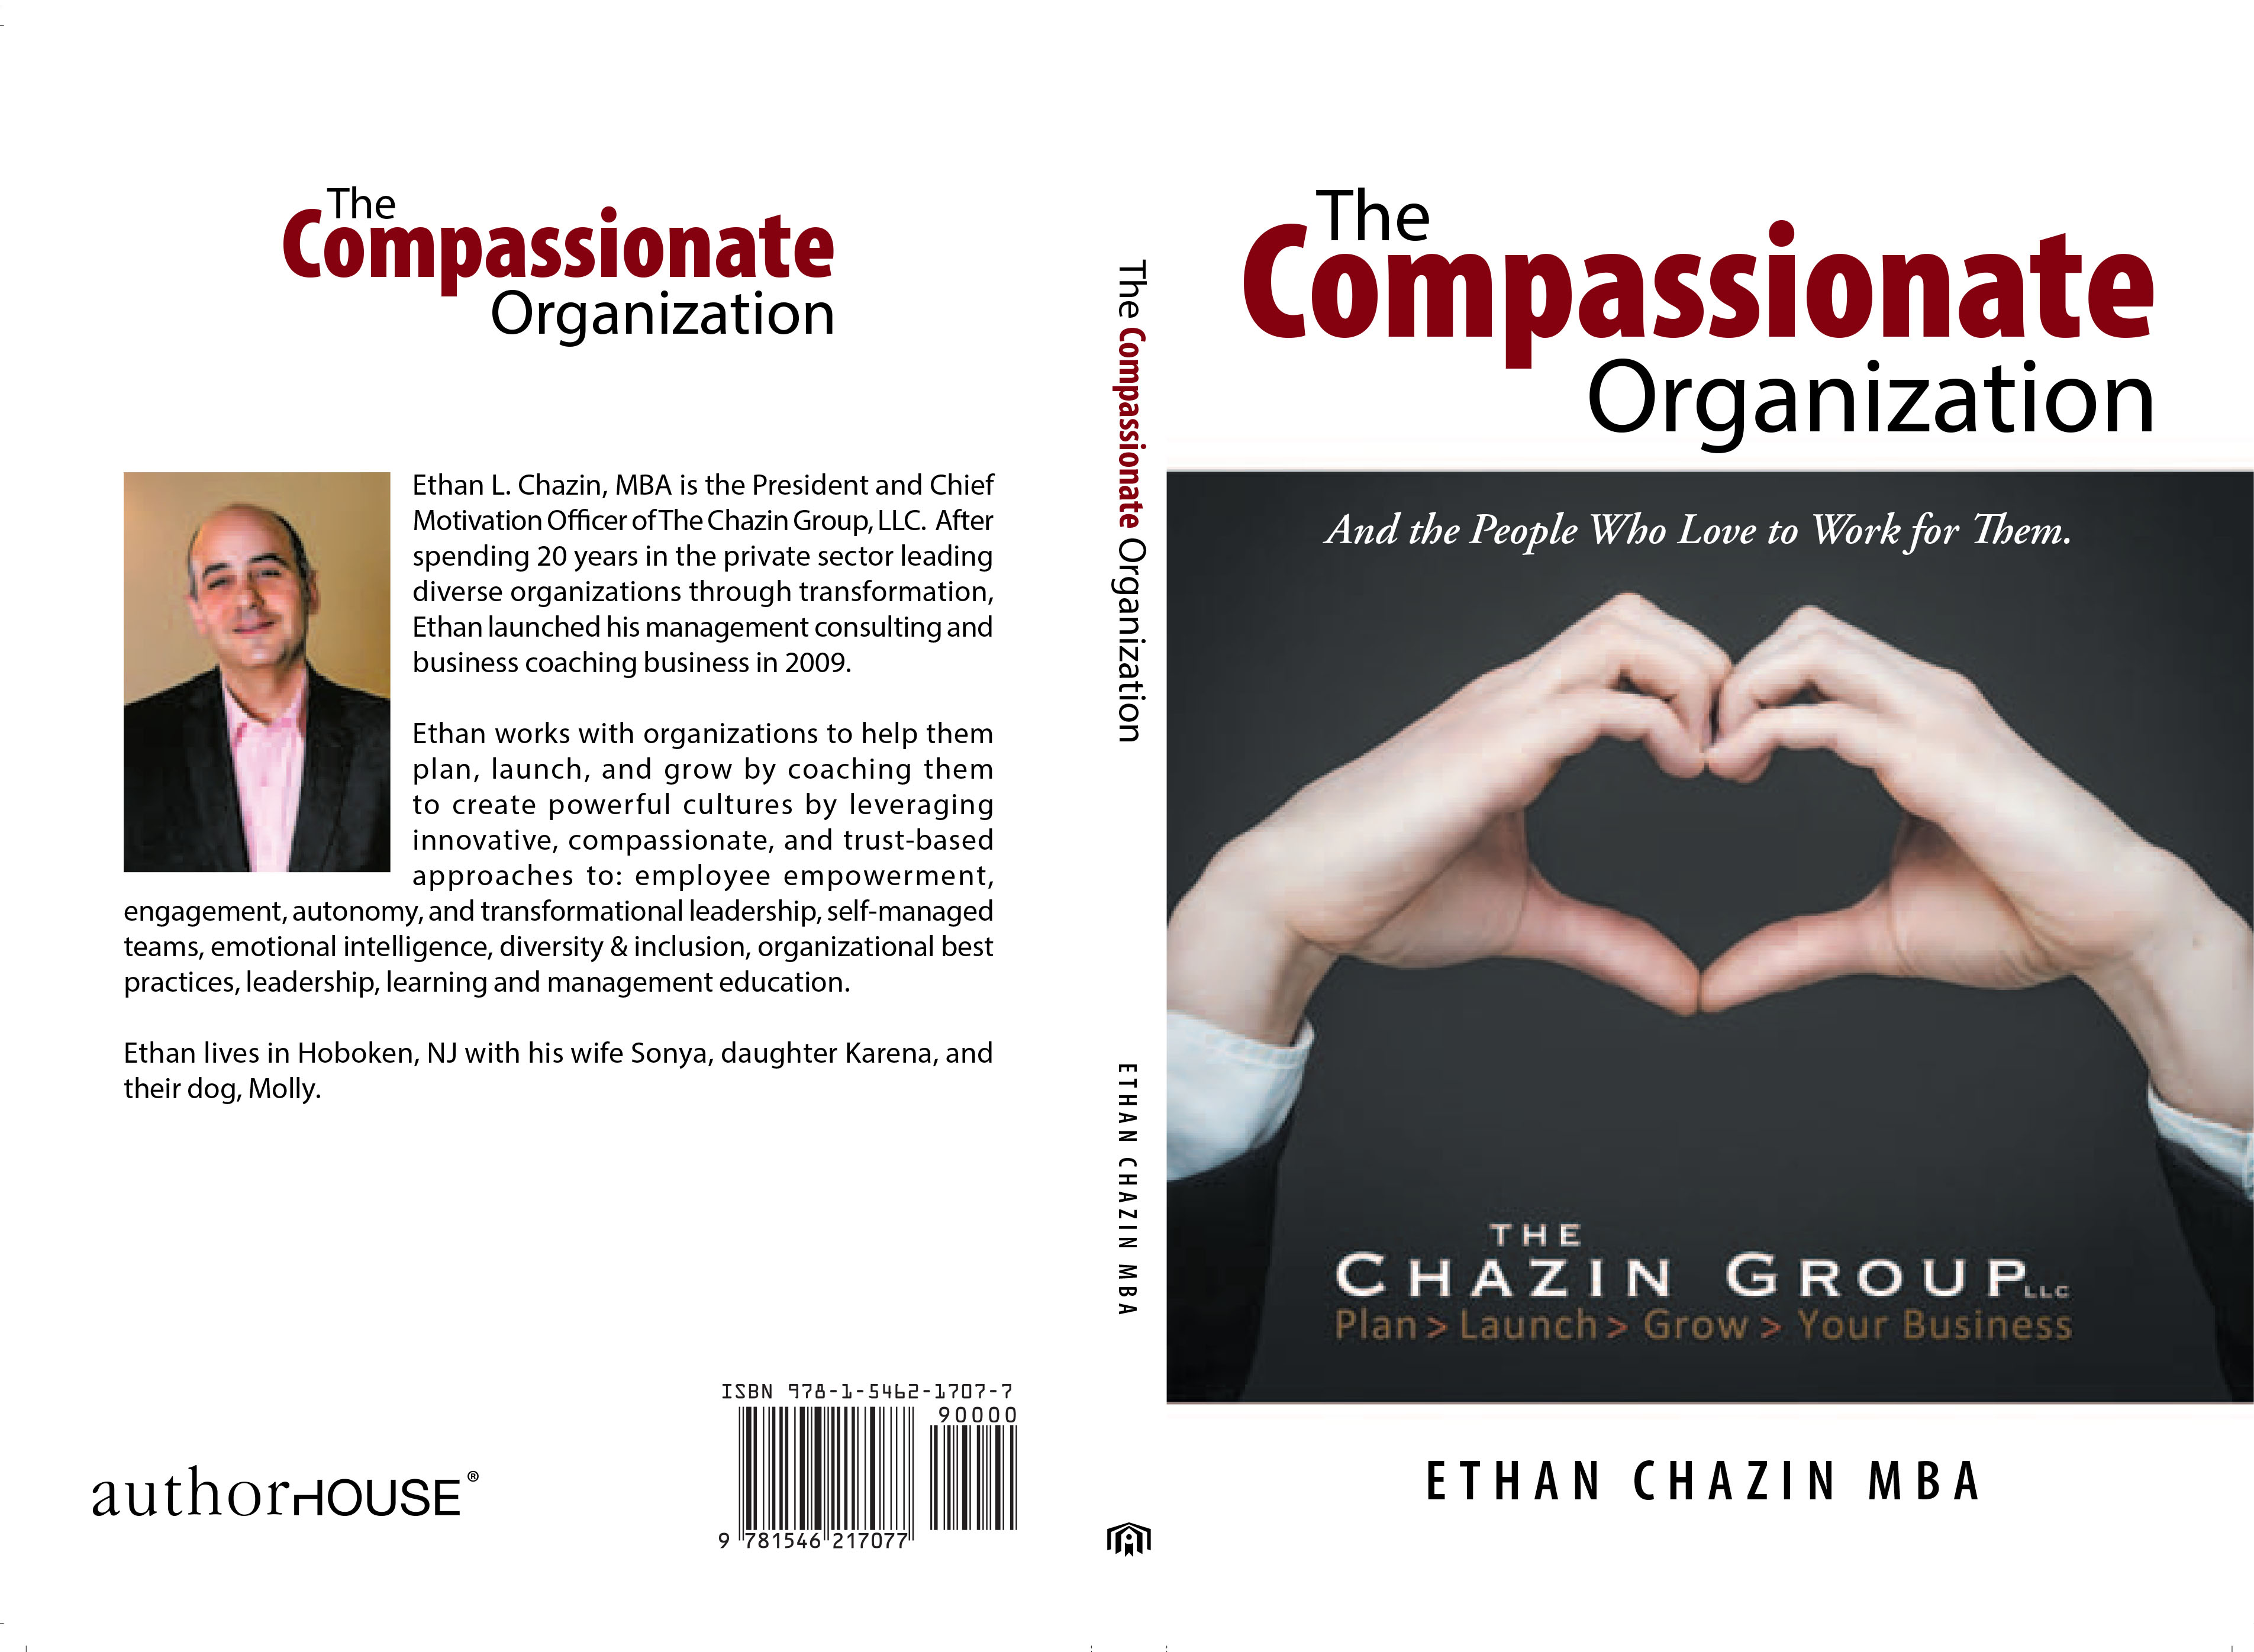 The Compassionate Organization: and the people who love to work for them